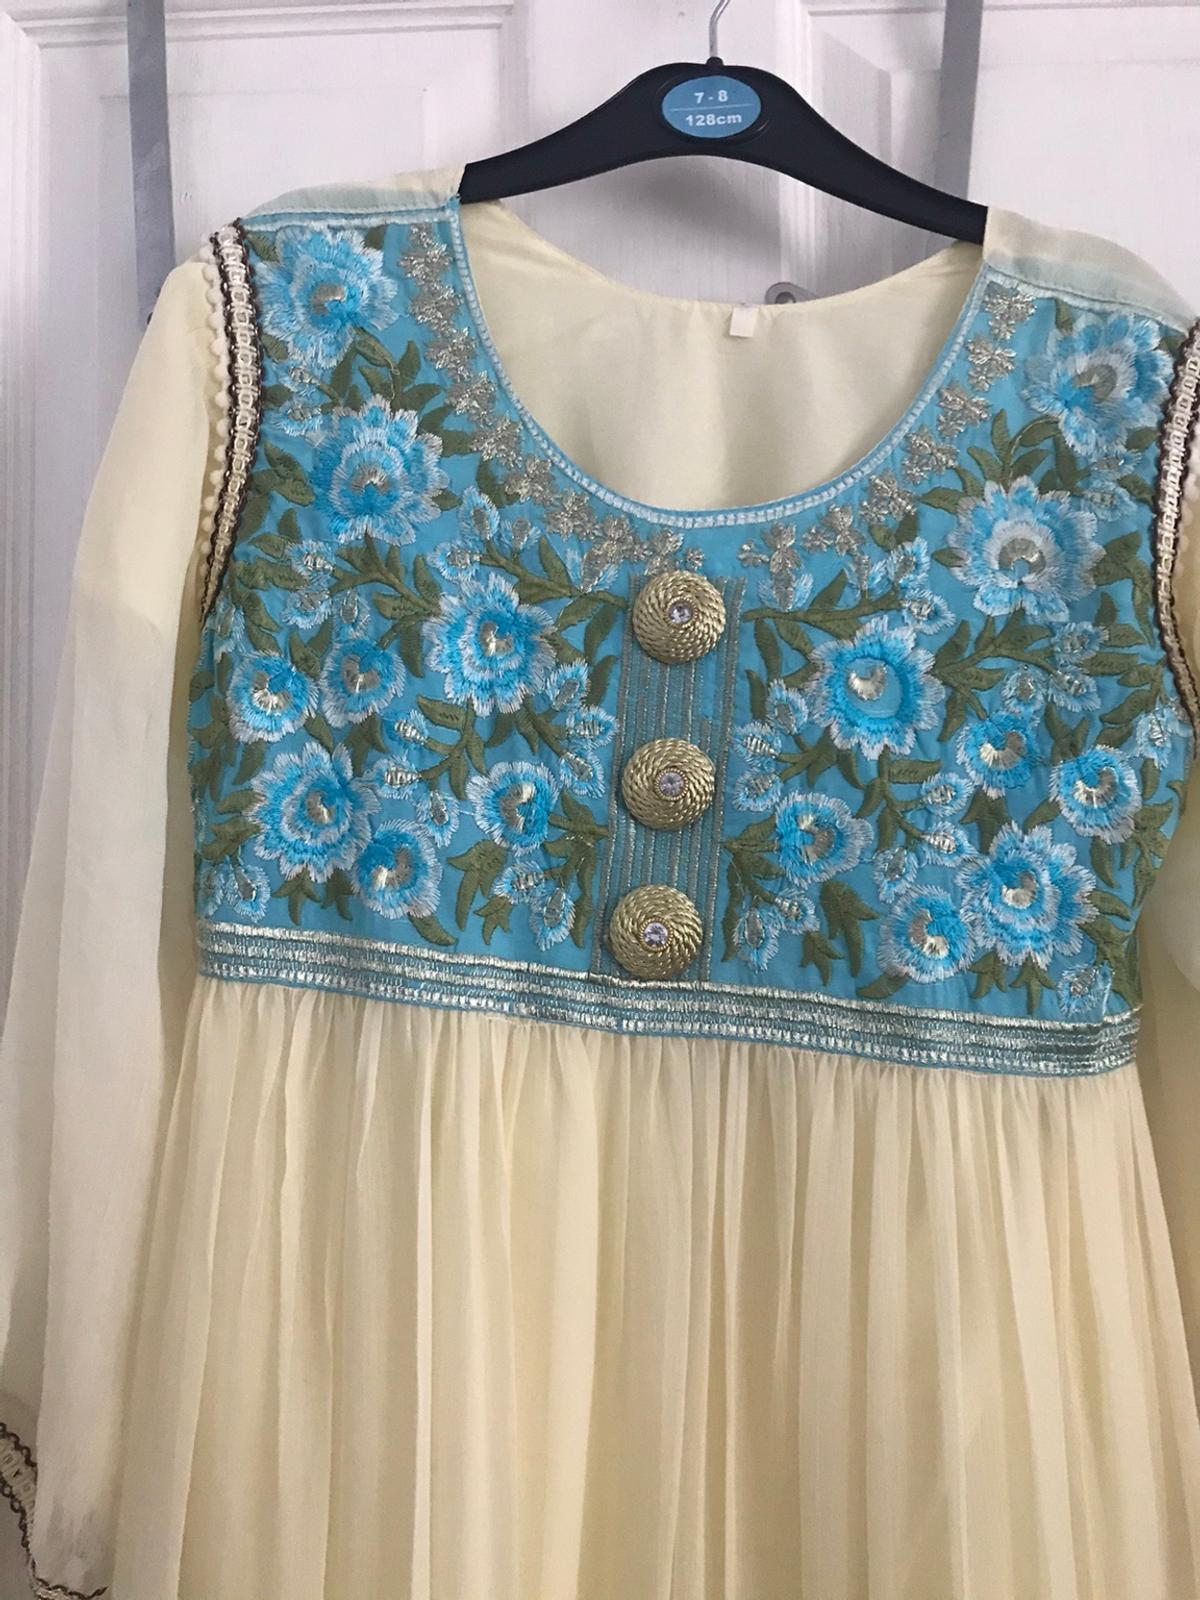 Immaculate condition Size 34 Dupatta and trousers included